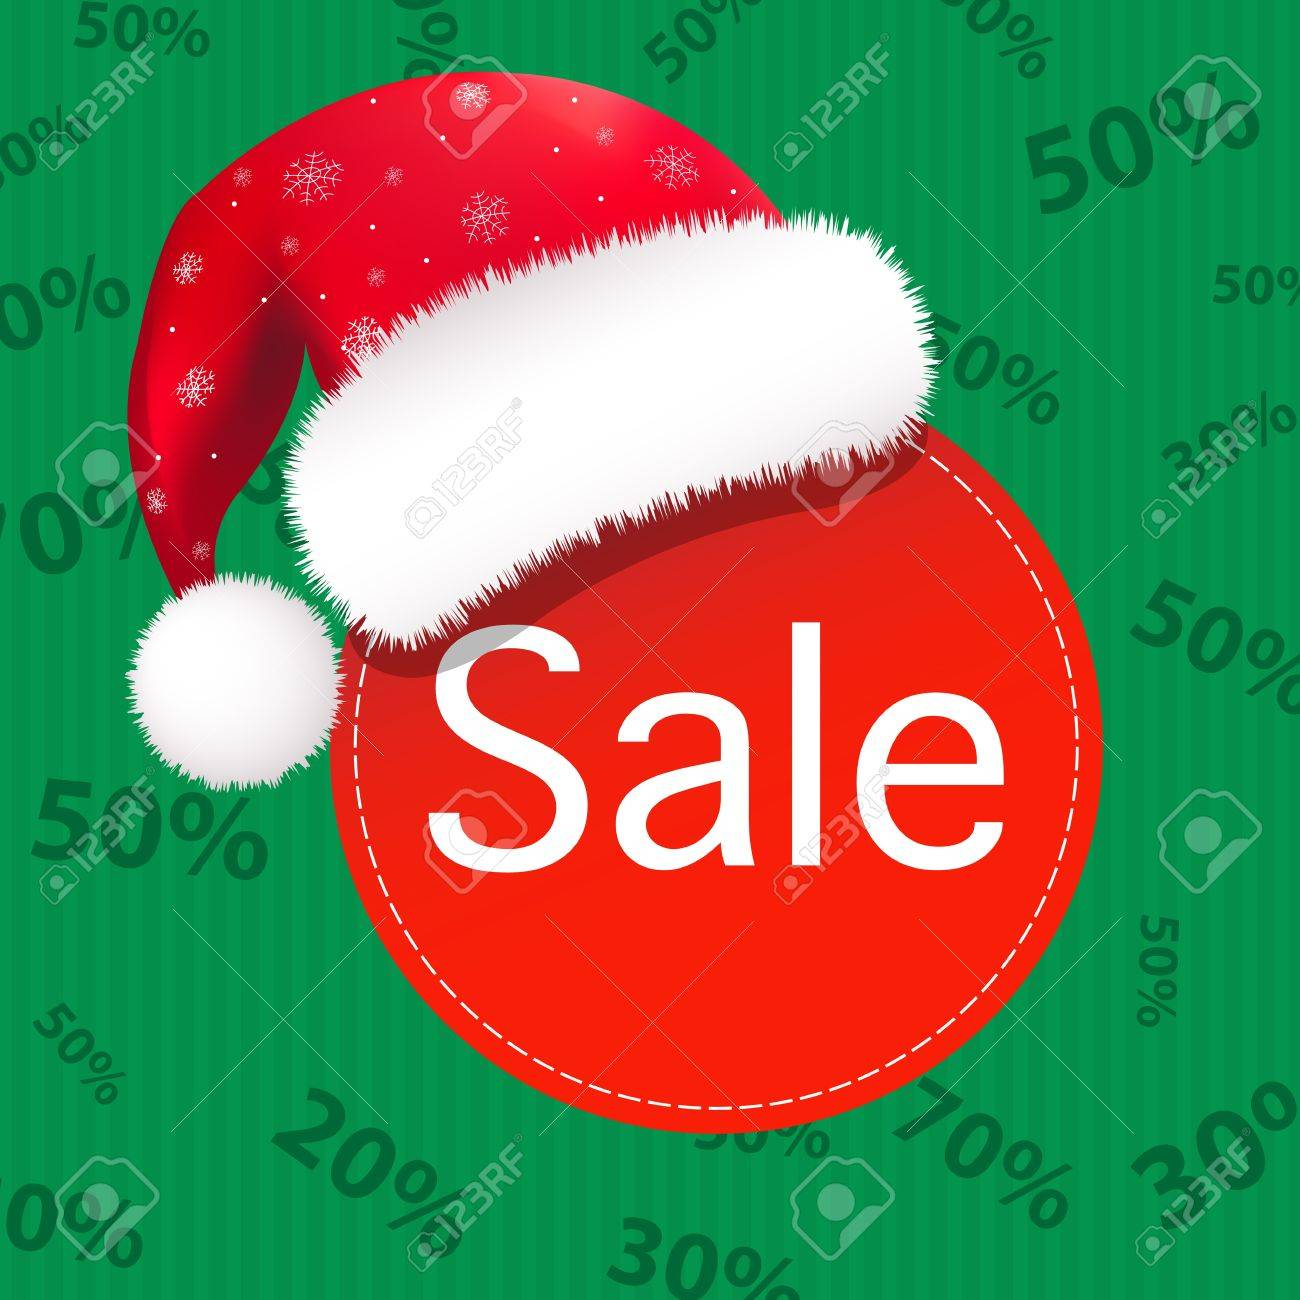 Christmas Sale Poster, Isolated On Green Background Stock Vector - 15153098